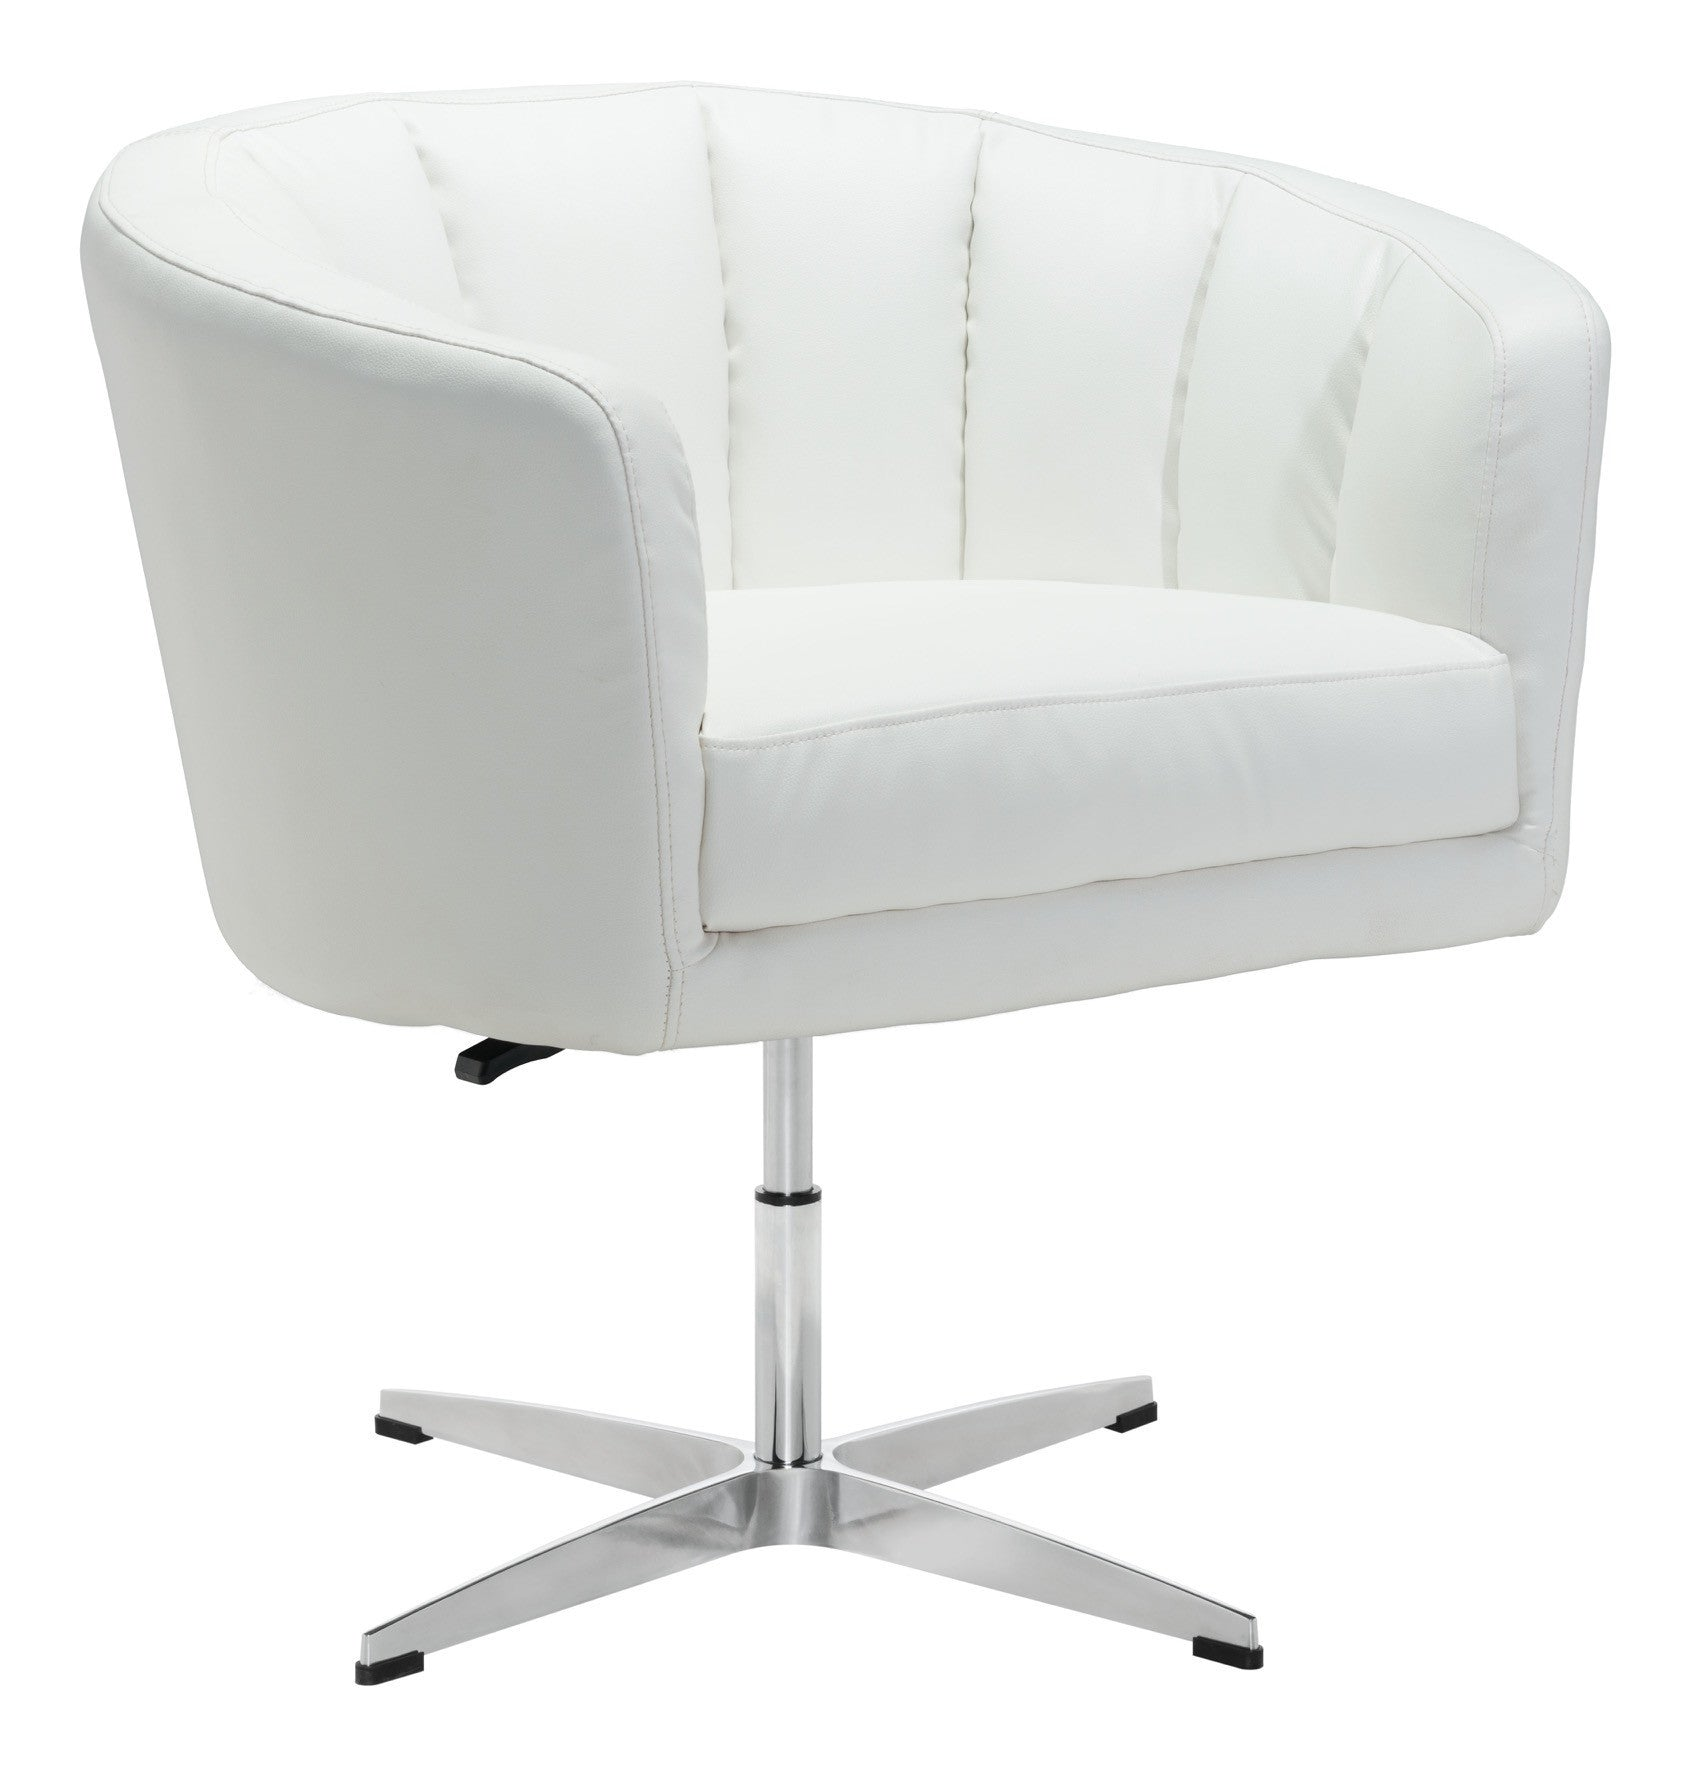 Wilshire Occasional Chair in White Leatherette on Aluminum Base-Accent Chairs-Alan Decor ...  sc 1 st  Alan Decor & Wilshire Occasional Chair in White Leatherette on Aluminum Base